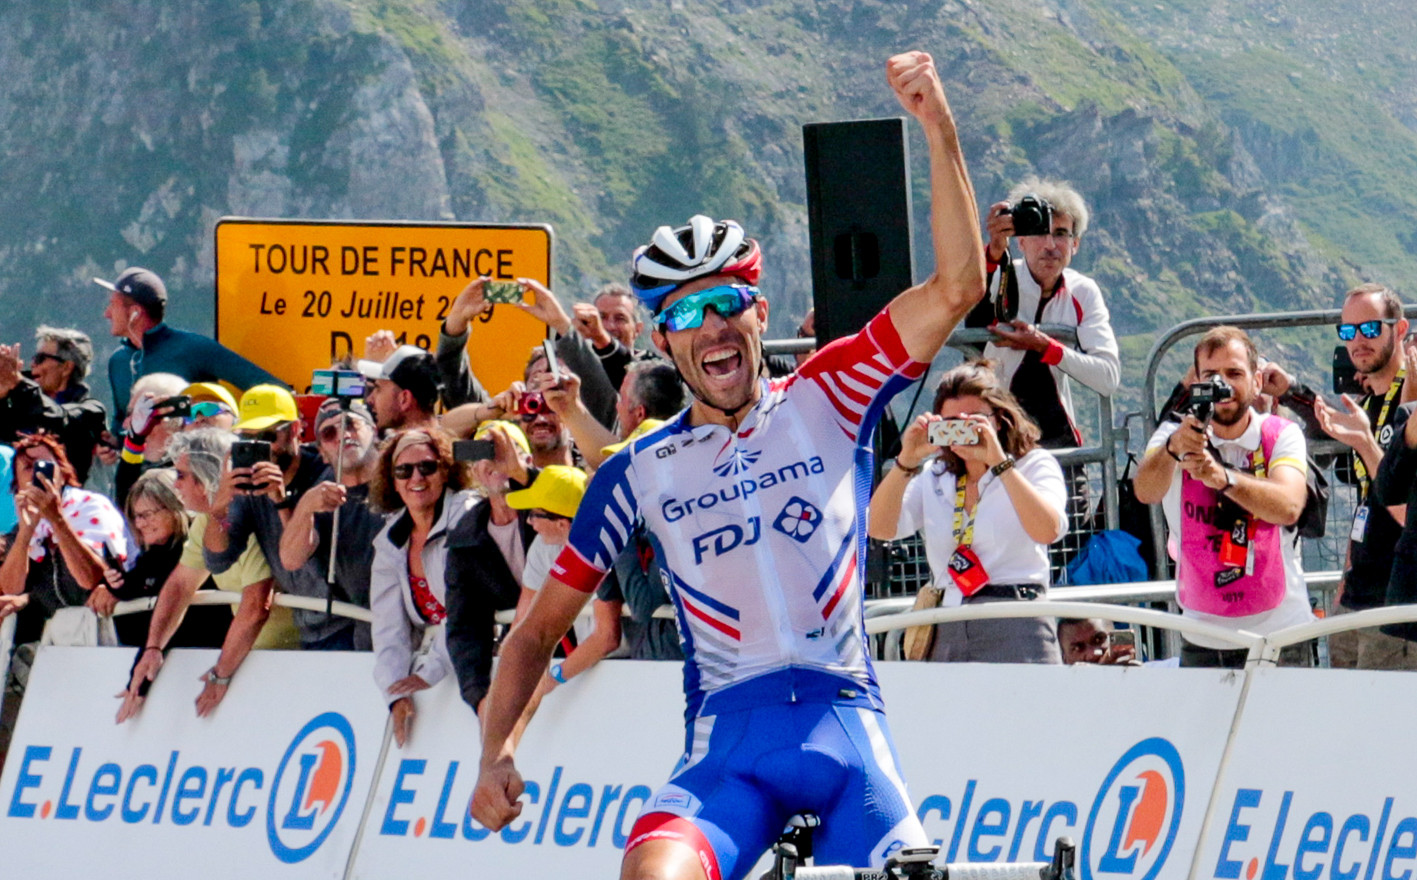 Thibaut Pinot (F/Groupama) celebrates his victory on top of the Tourmalet on stage 14 of the Tour de France 2019.